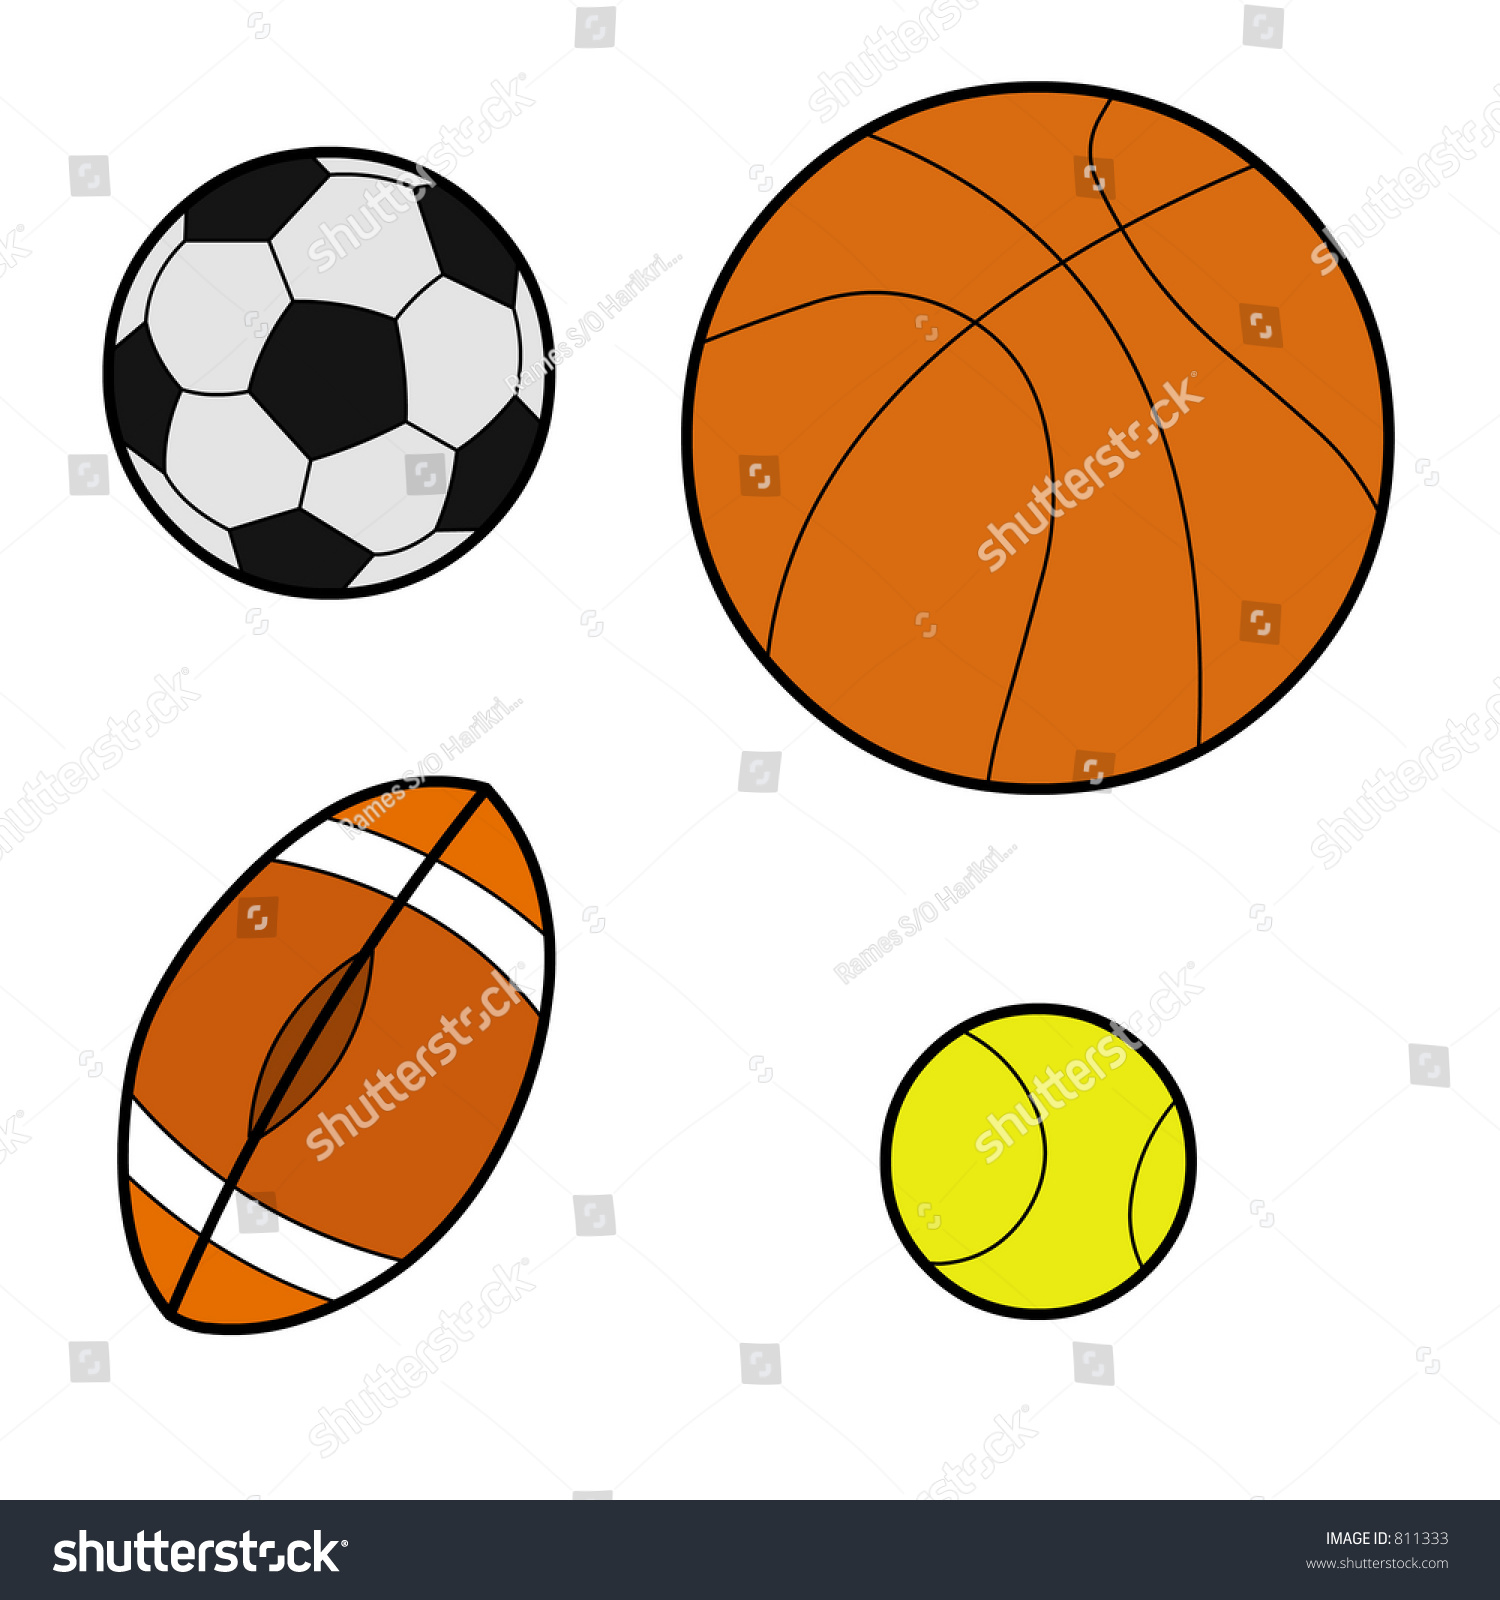 Featuring All Types Balls Basket Ball Stock Illustration